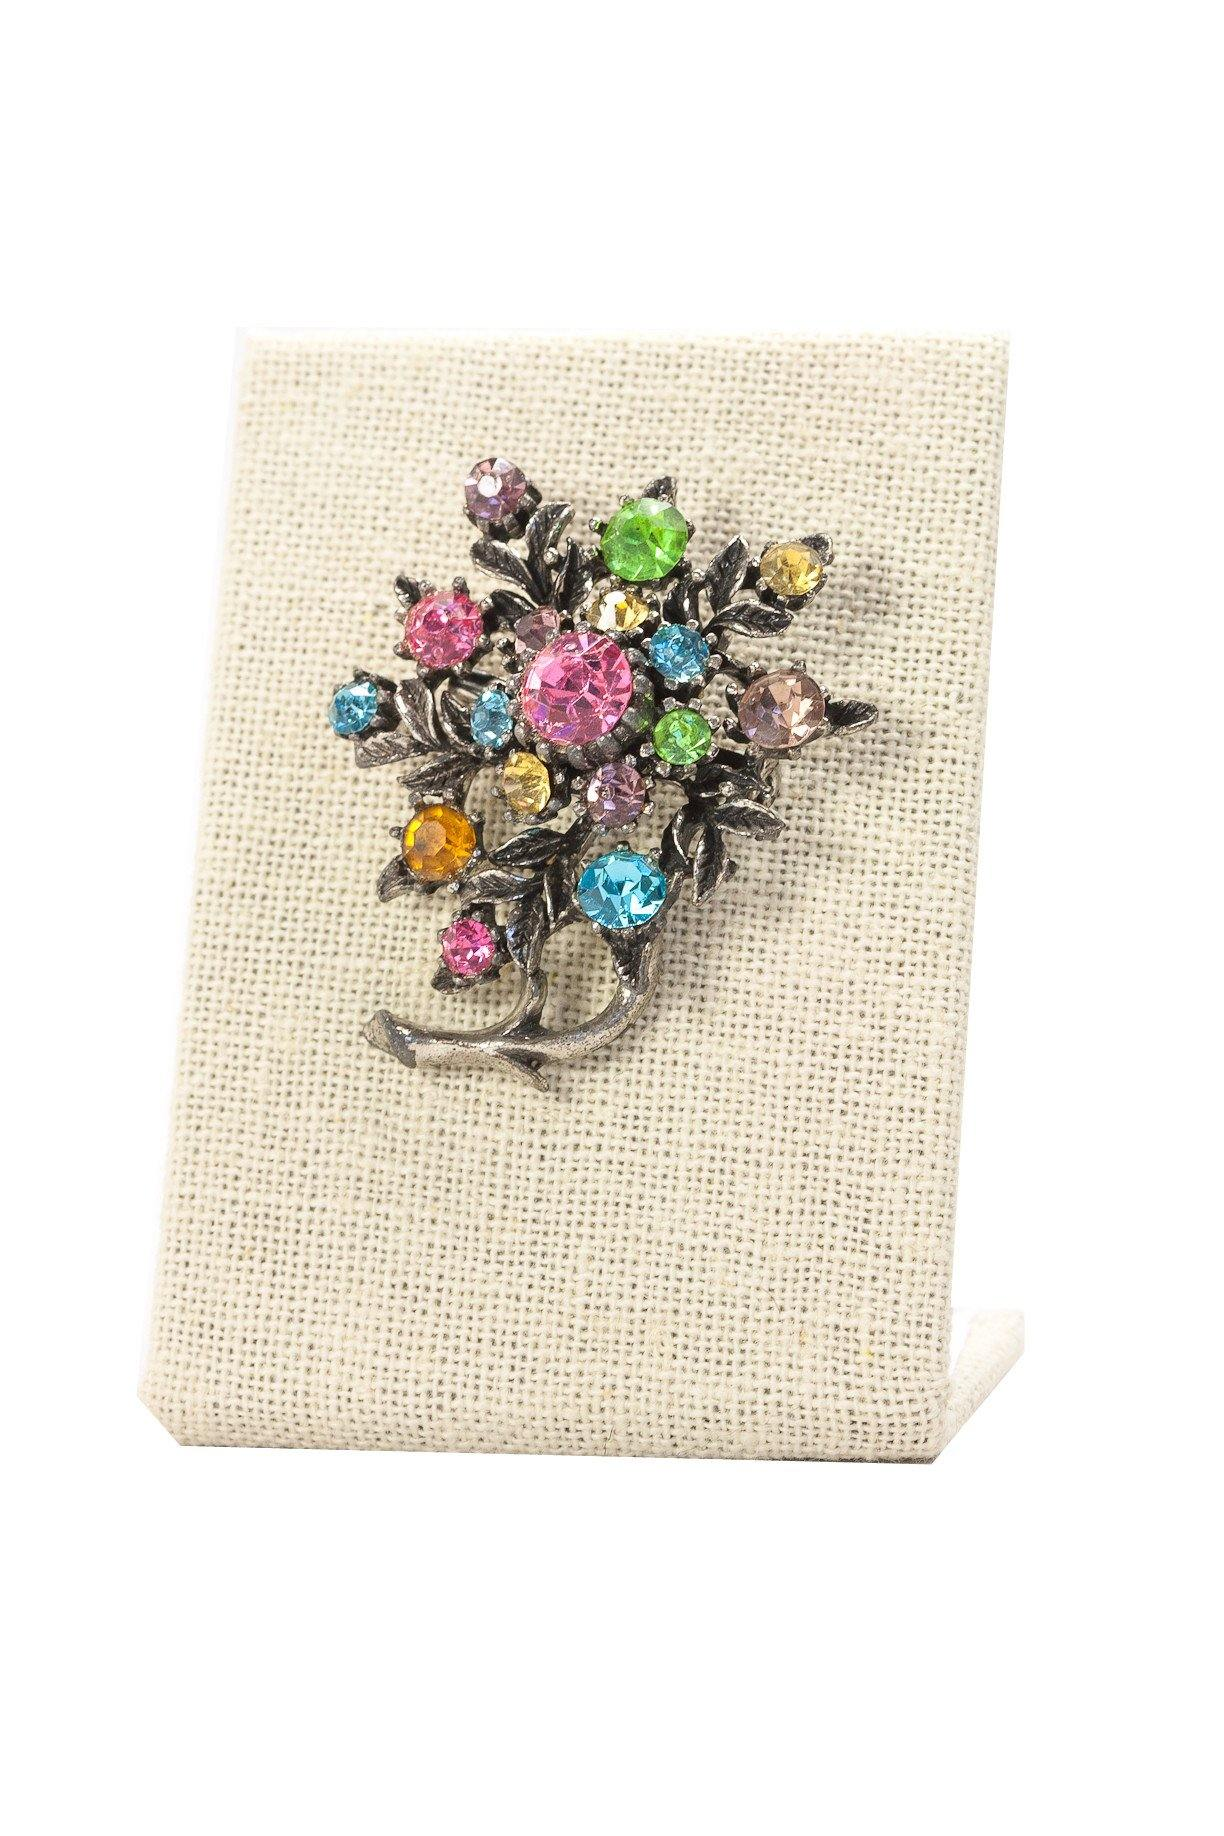 50's__Coro__Multi Color Bunches Brooch